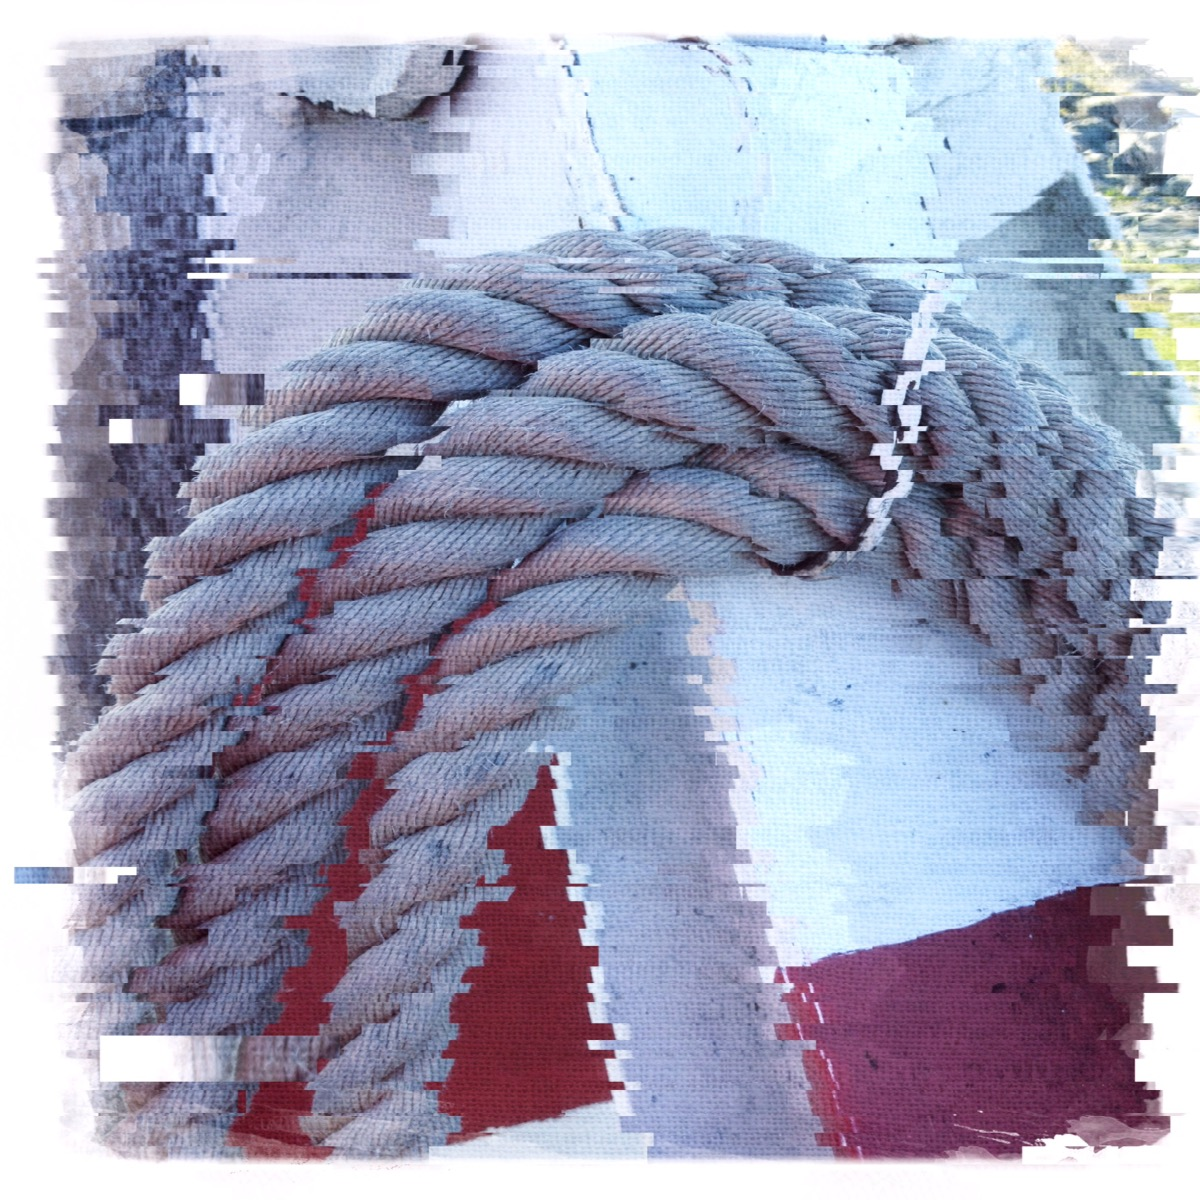 A rope at the Gothenburg ferry